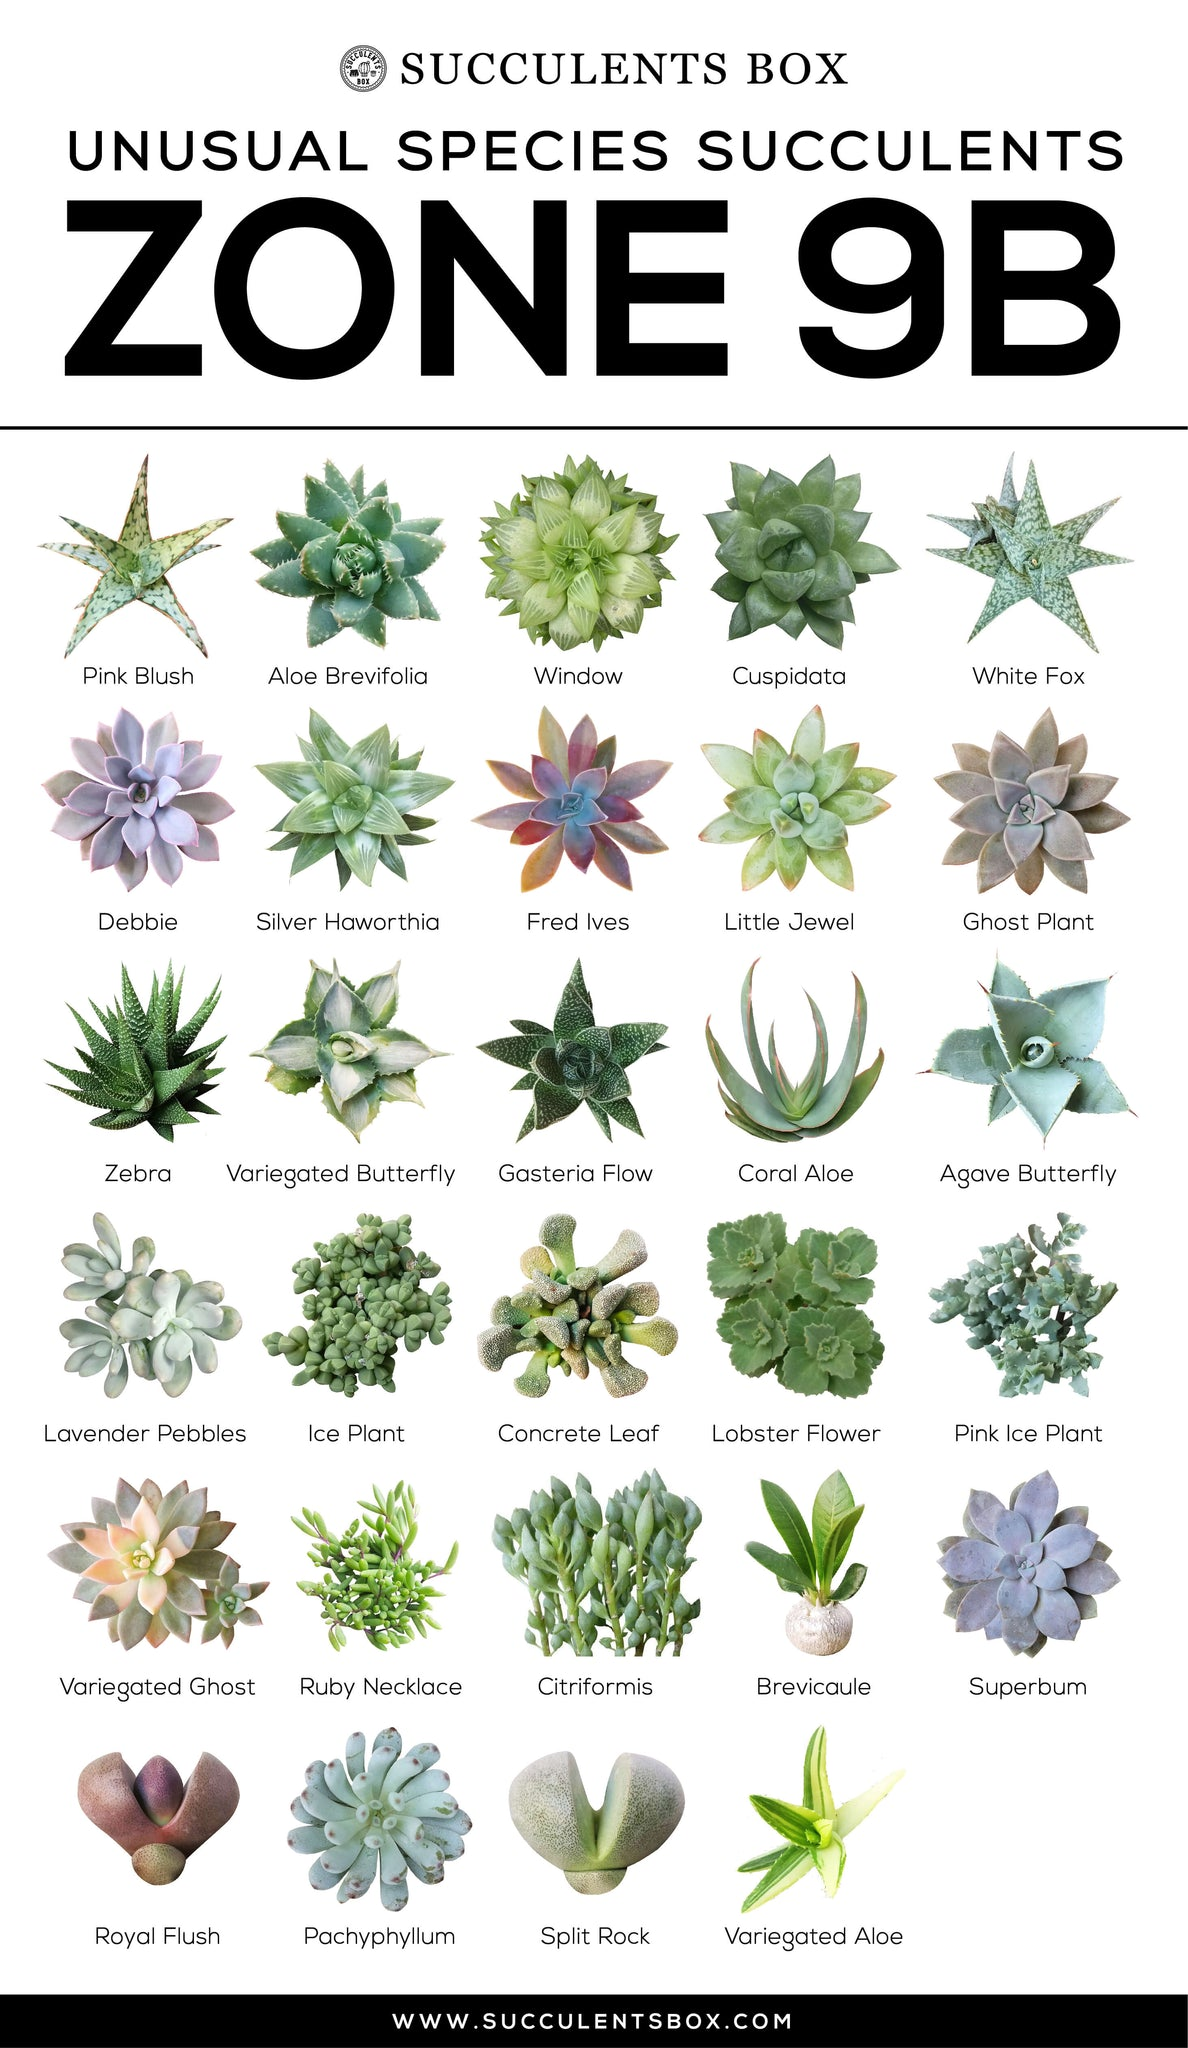 Types of Succulents Zone 9b